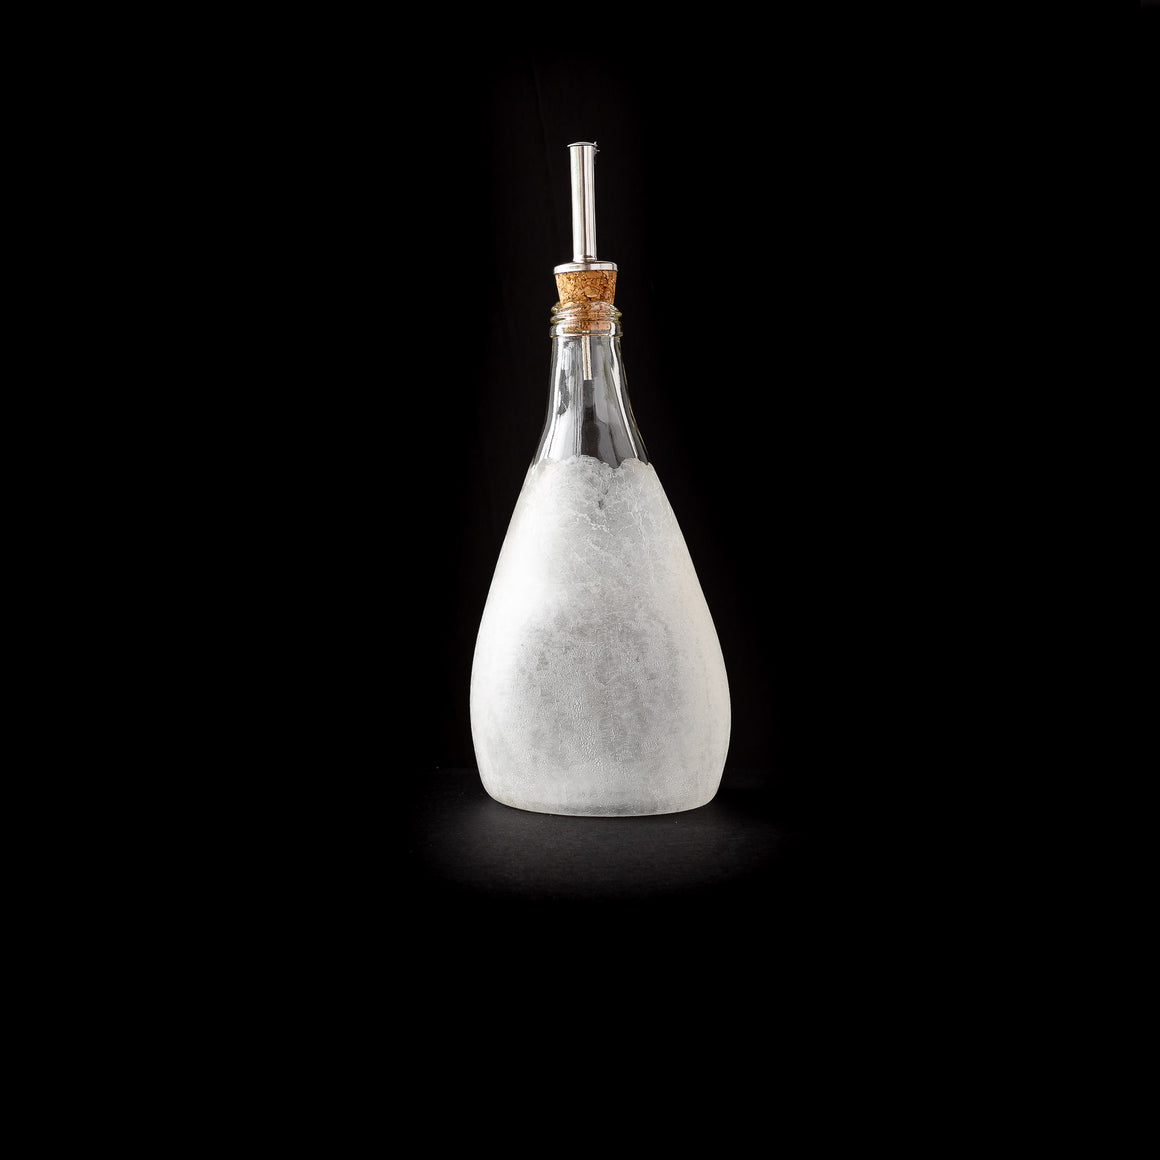 Crackled Texture - Hand Blown Glass Oil Dispenser Bottle - Sold by Chic & Basta